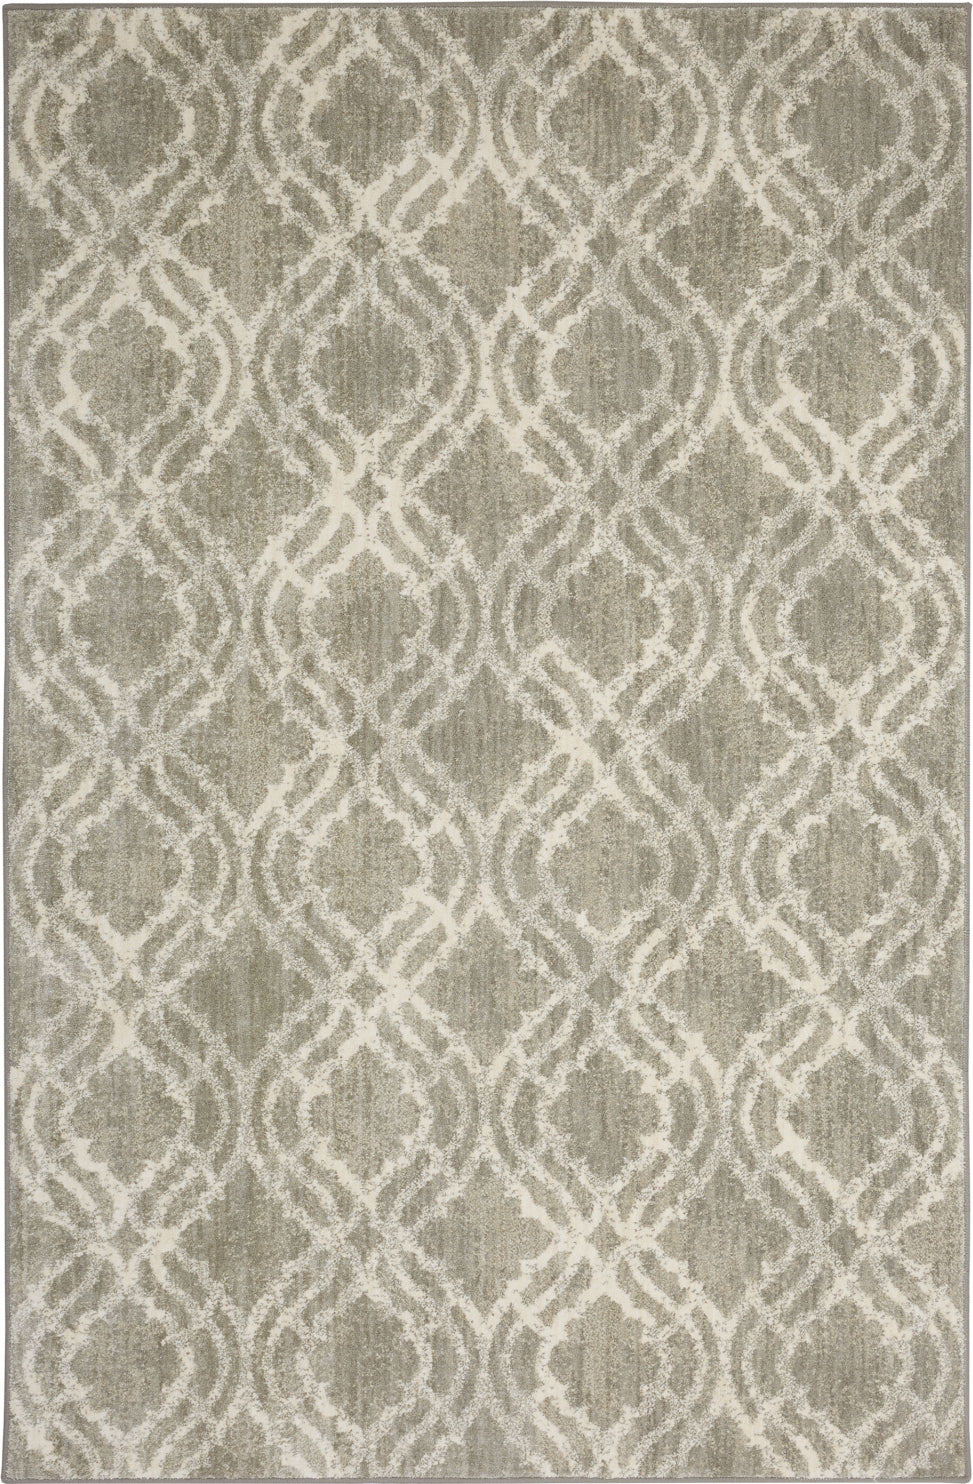 Karastan Euphoria Potterton Willow Grey Area Rug by Lattice main image